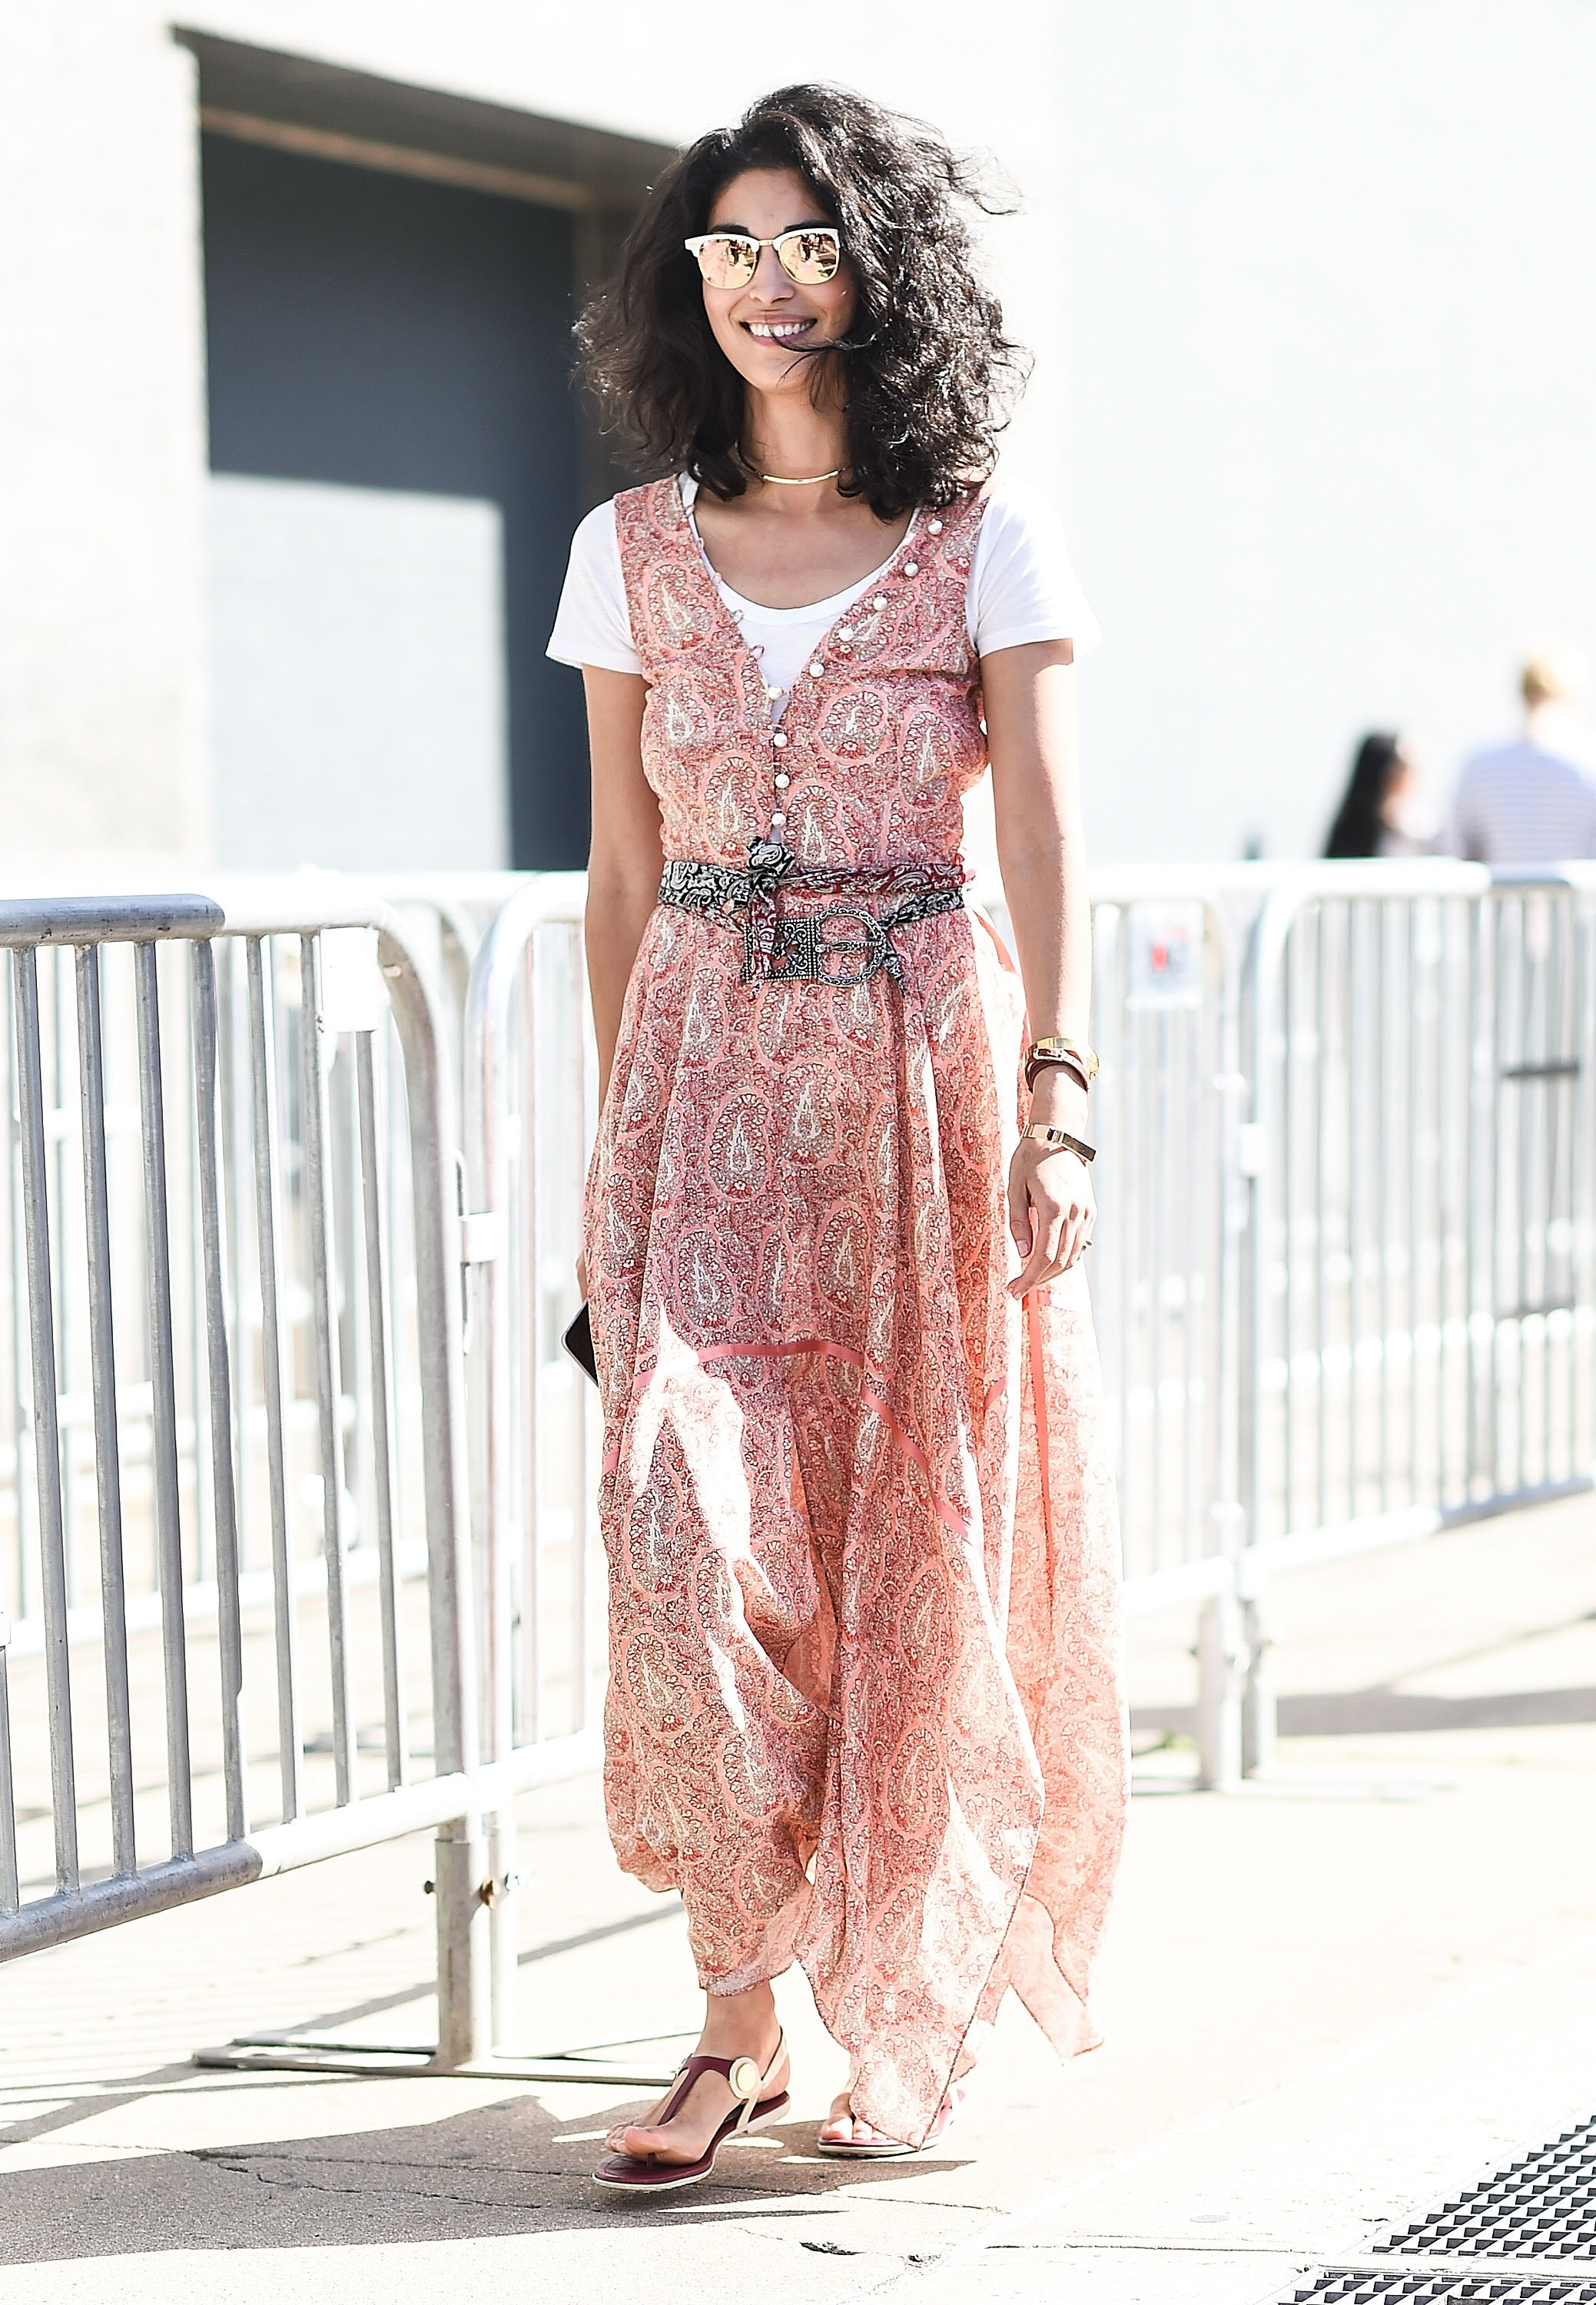 Caroline Issa took this trend in a bohemian direction with a flowy maxi dress and flat sandals.